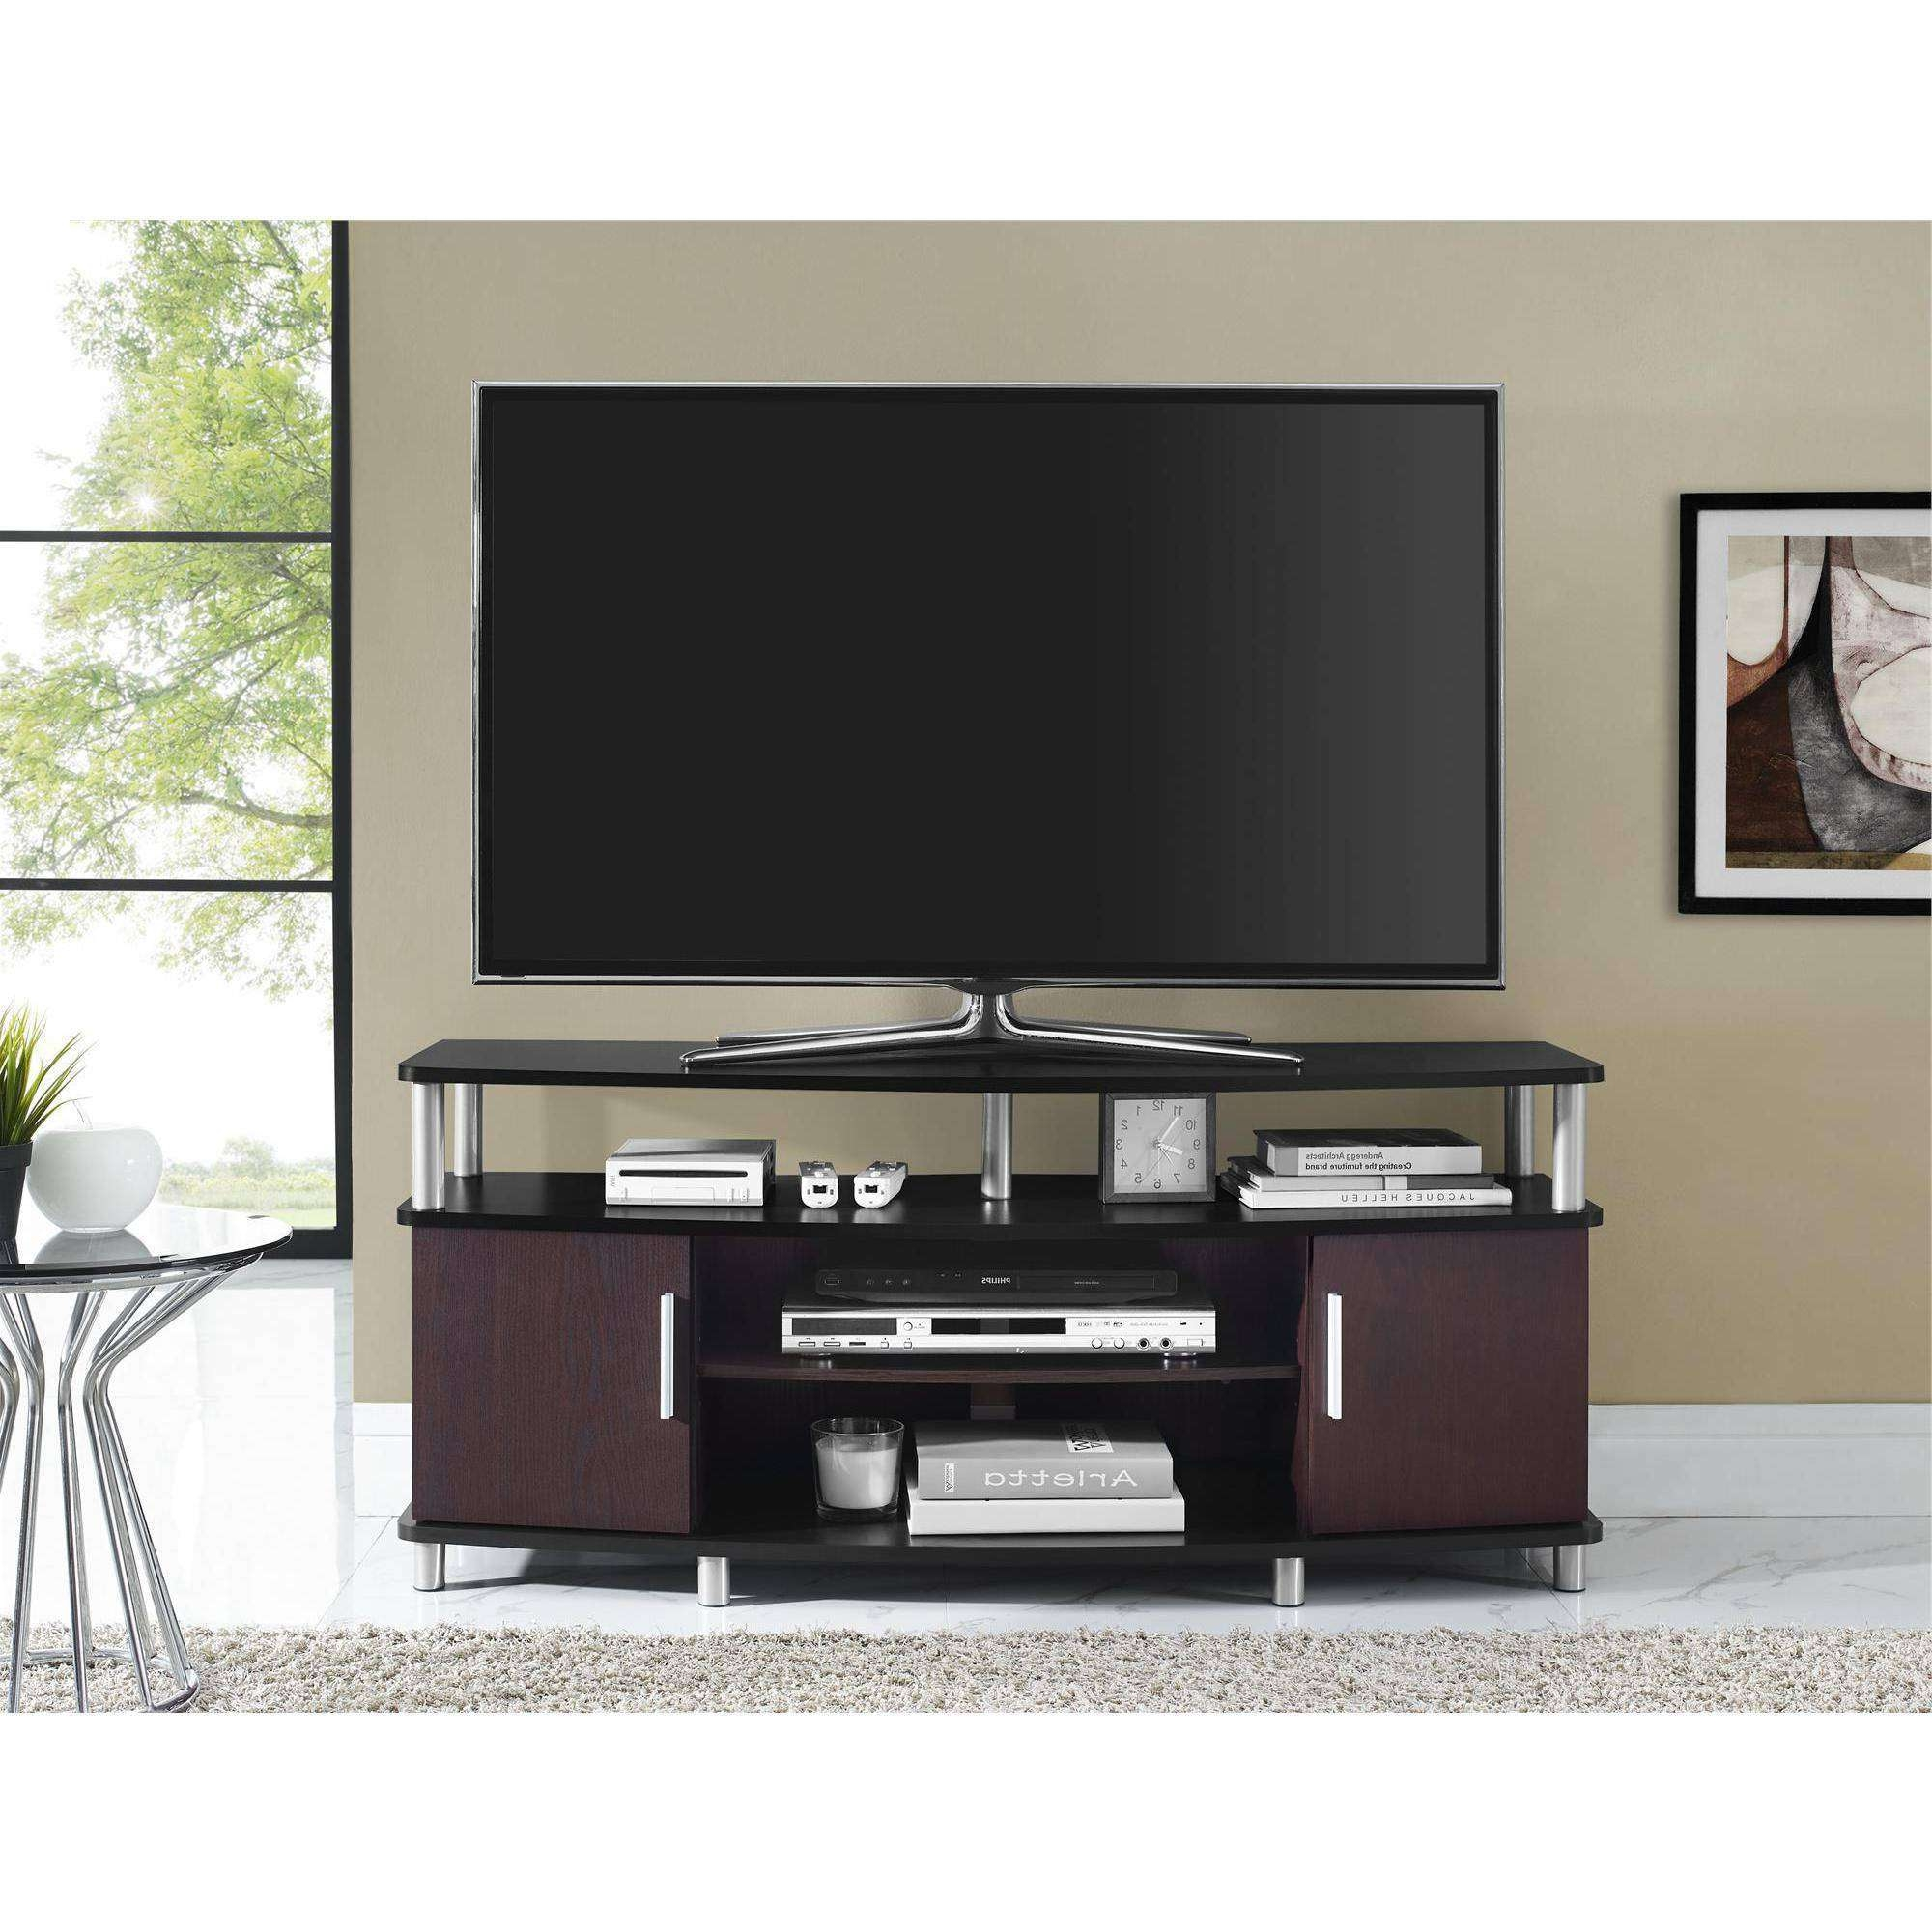 An Overview Of 50 Inch Tv Stand – Furniture Depot In Tv Stands For 50 Inch Tvs (View 2 of 15)